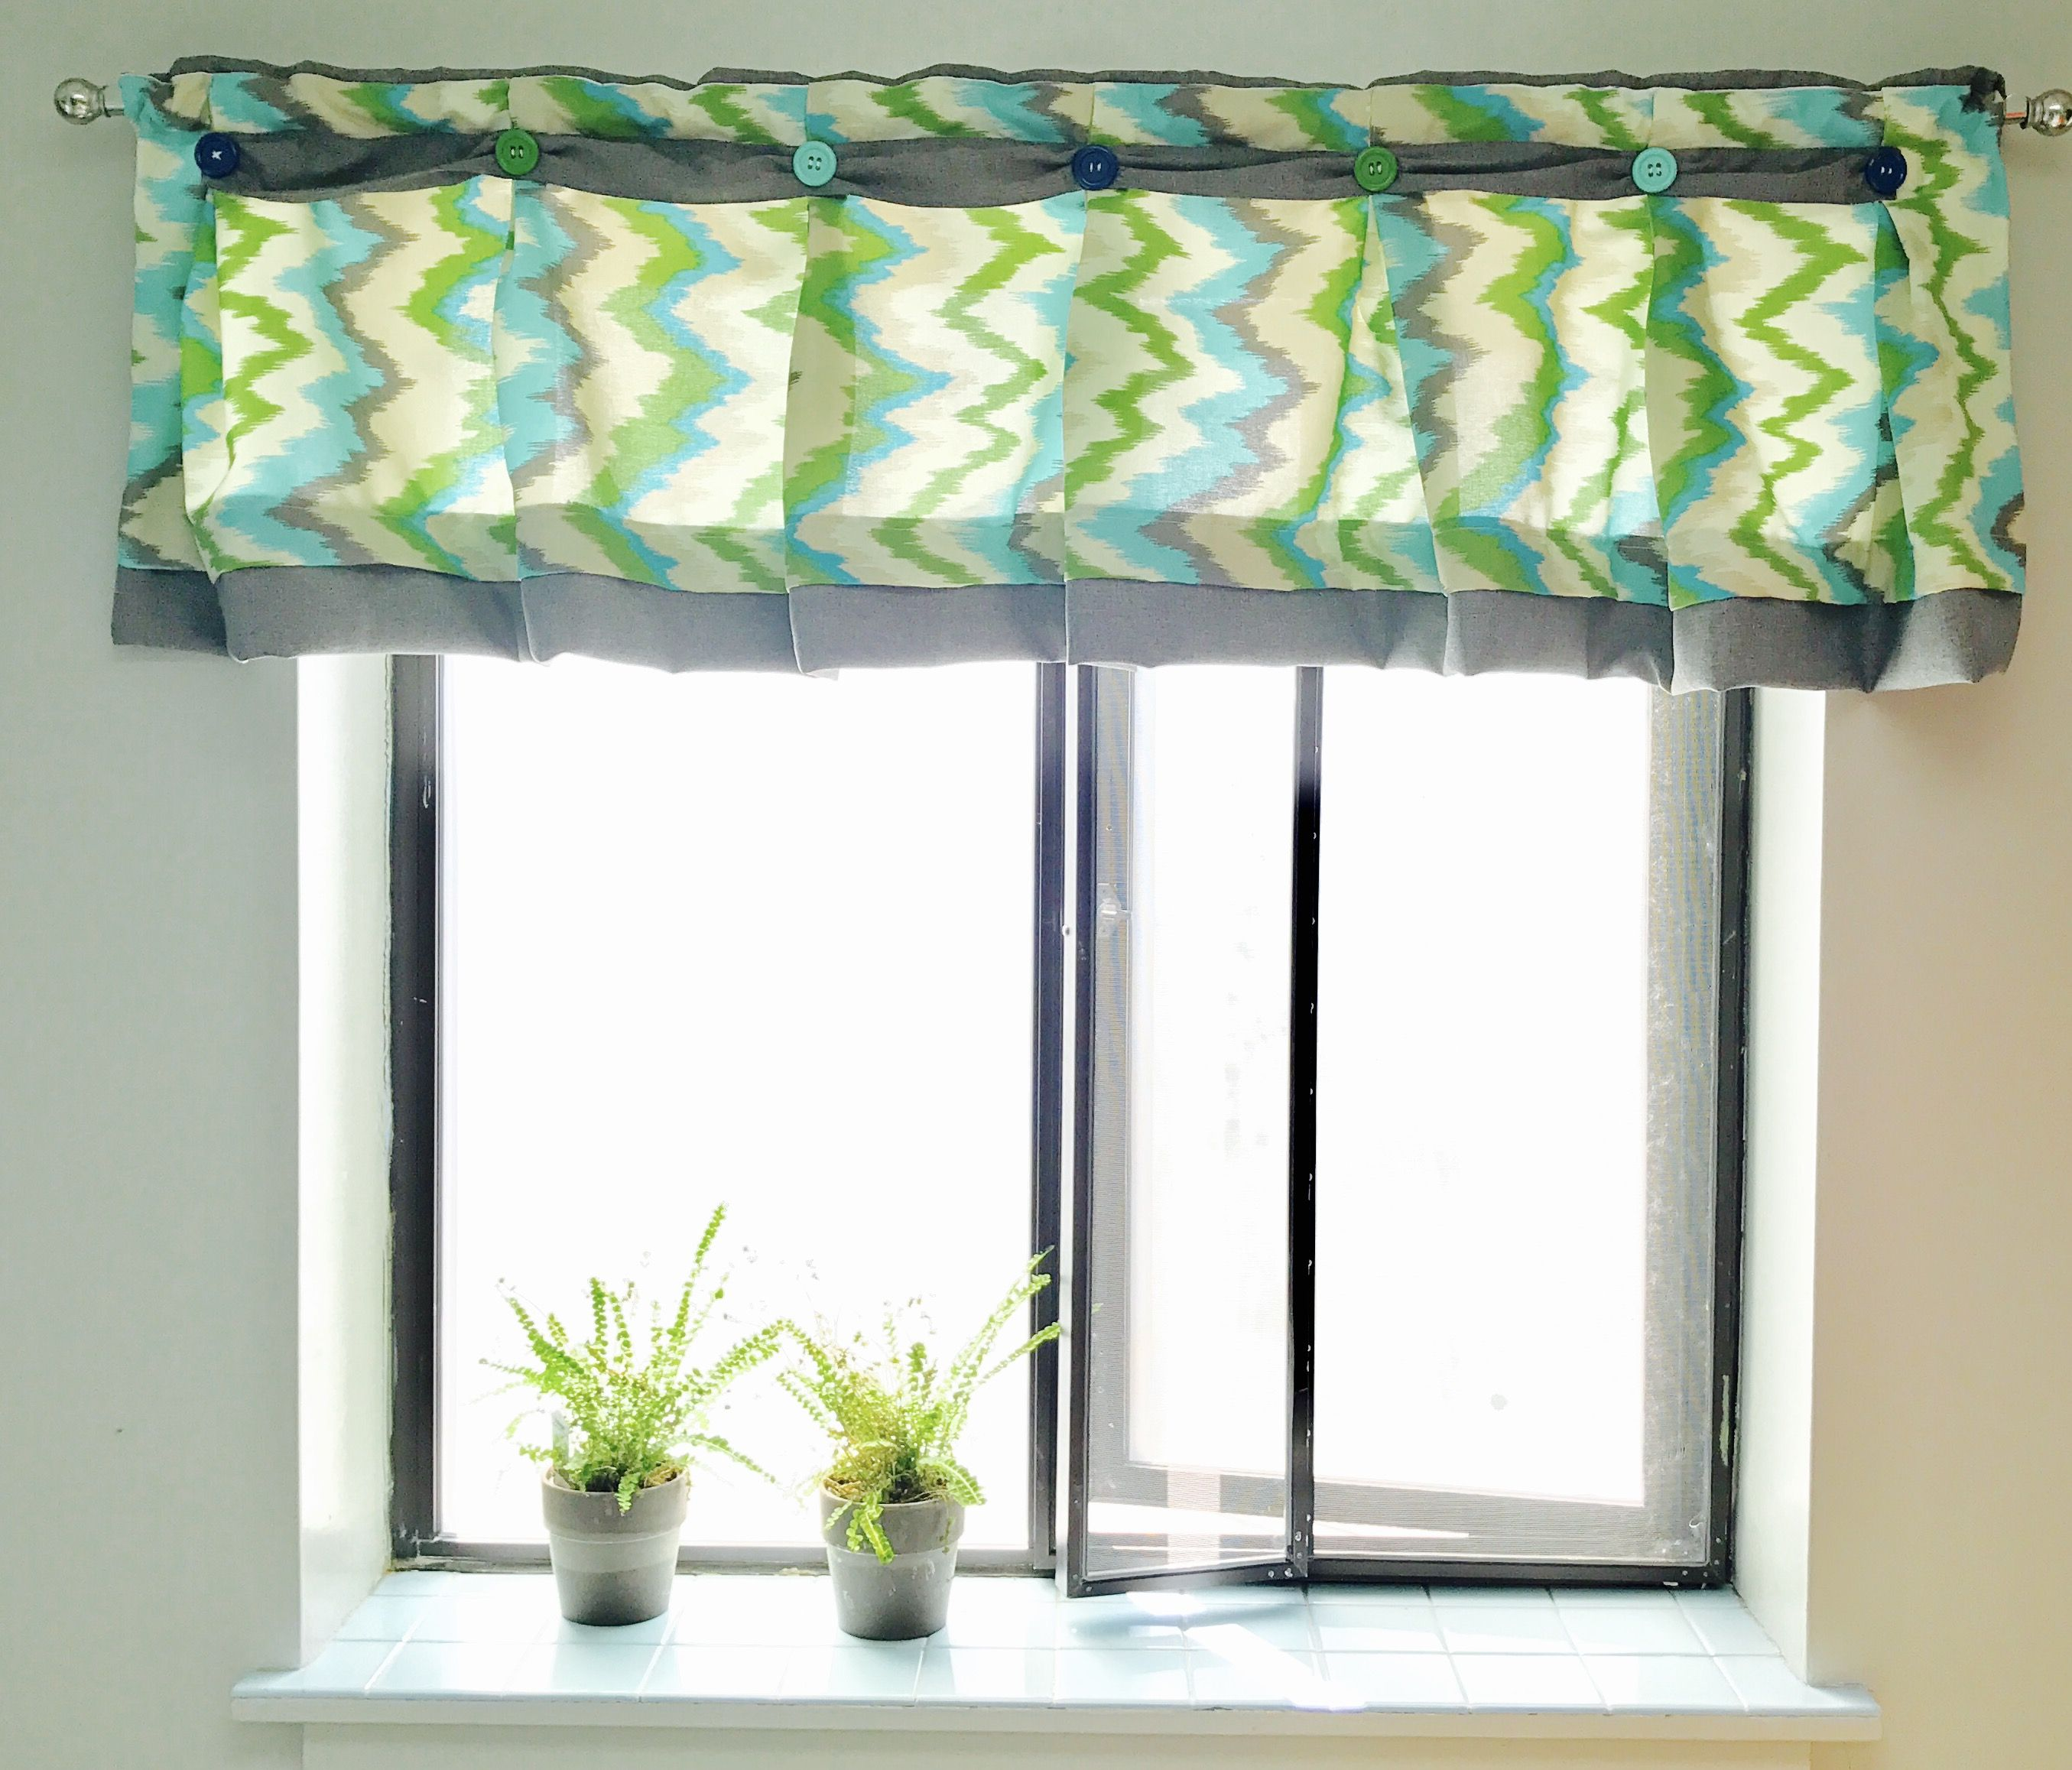 Outside window treatment ideas  pin by bahrain heart on curtain  pinterest